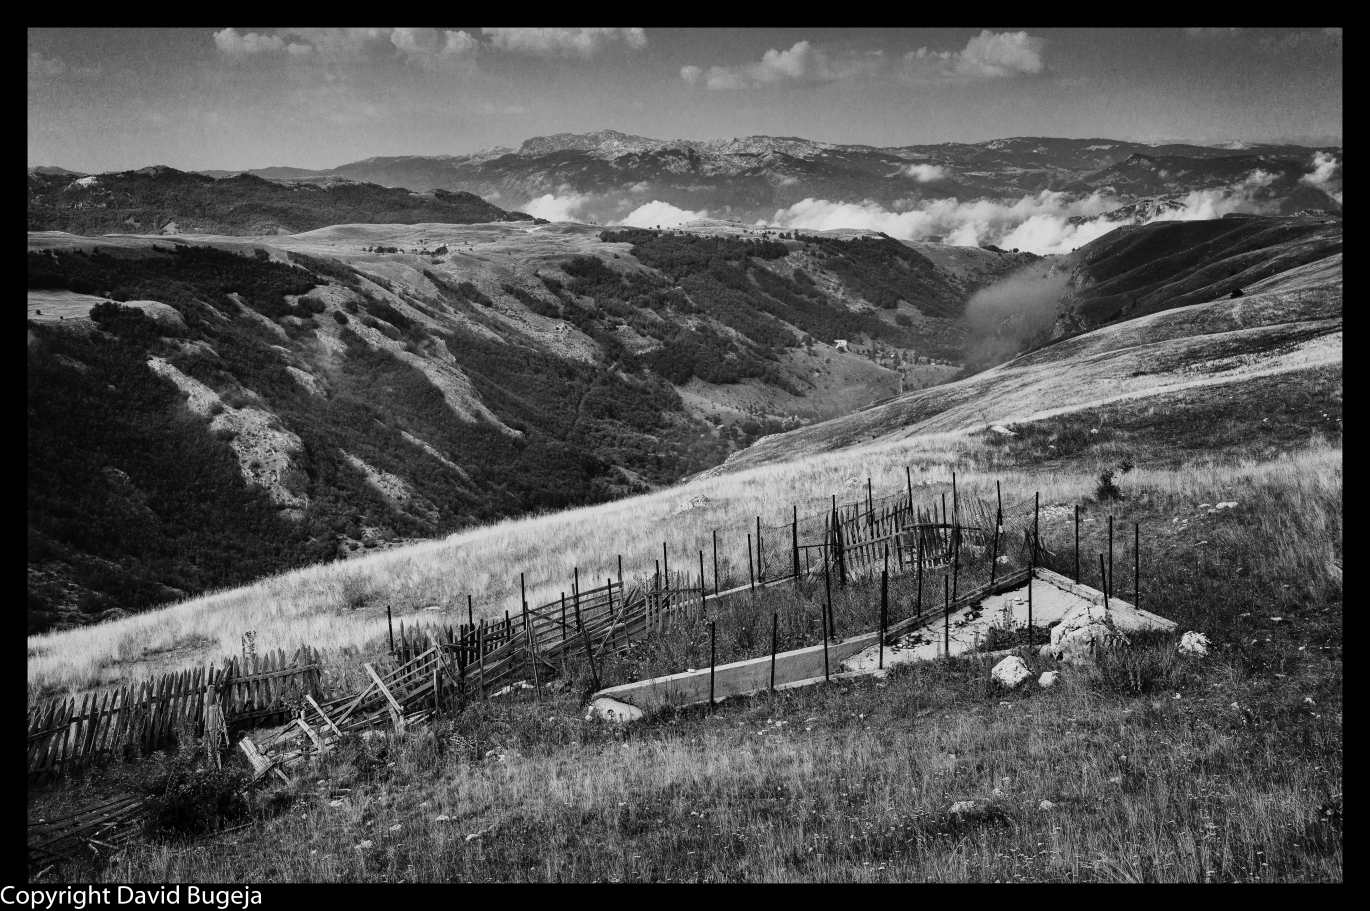 After the Storm - Across Durmitor to Trsa and Pluzine David Bugeja (c) 2013